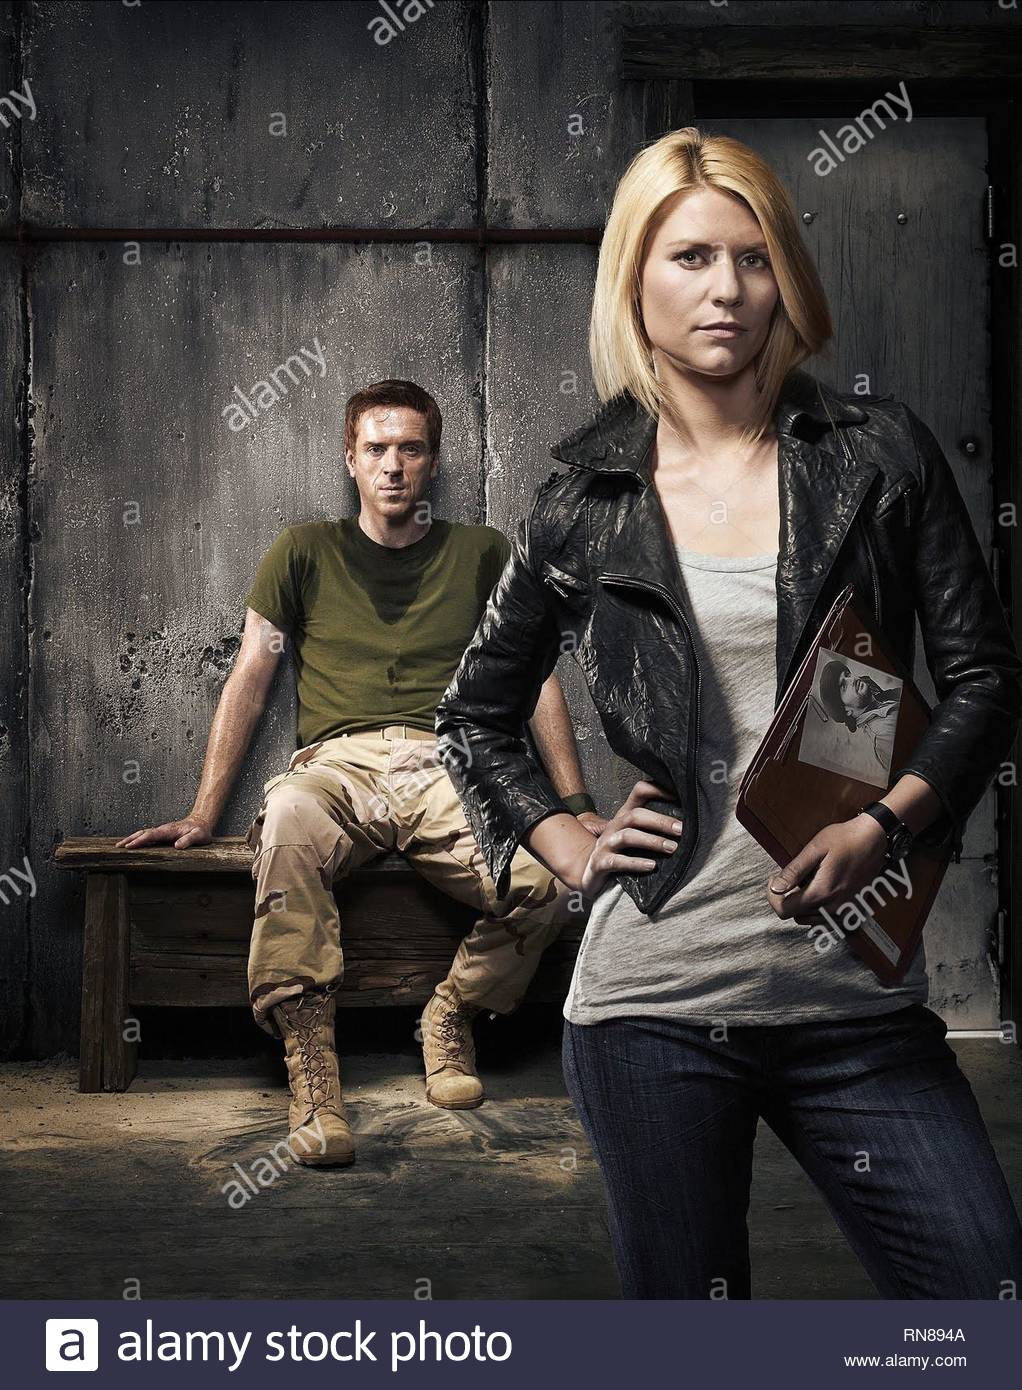 DAMIAN LEWIS,CLAIRE DANES, HOMELAND, 2011 - Stock Image